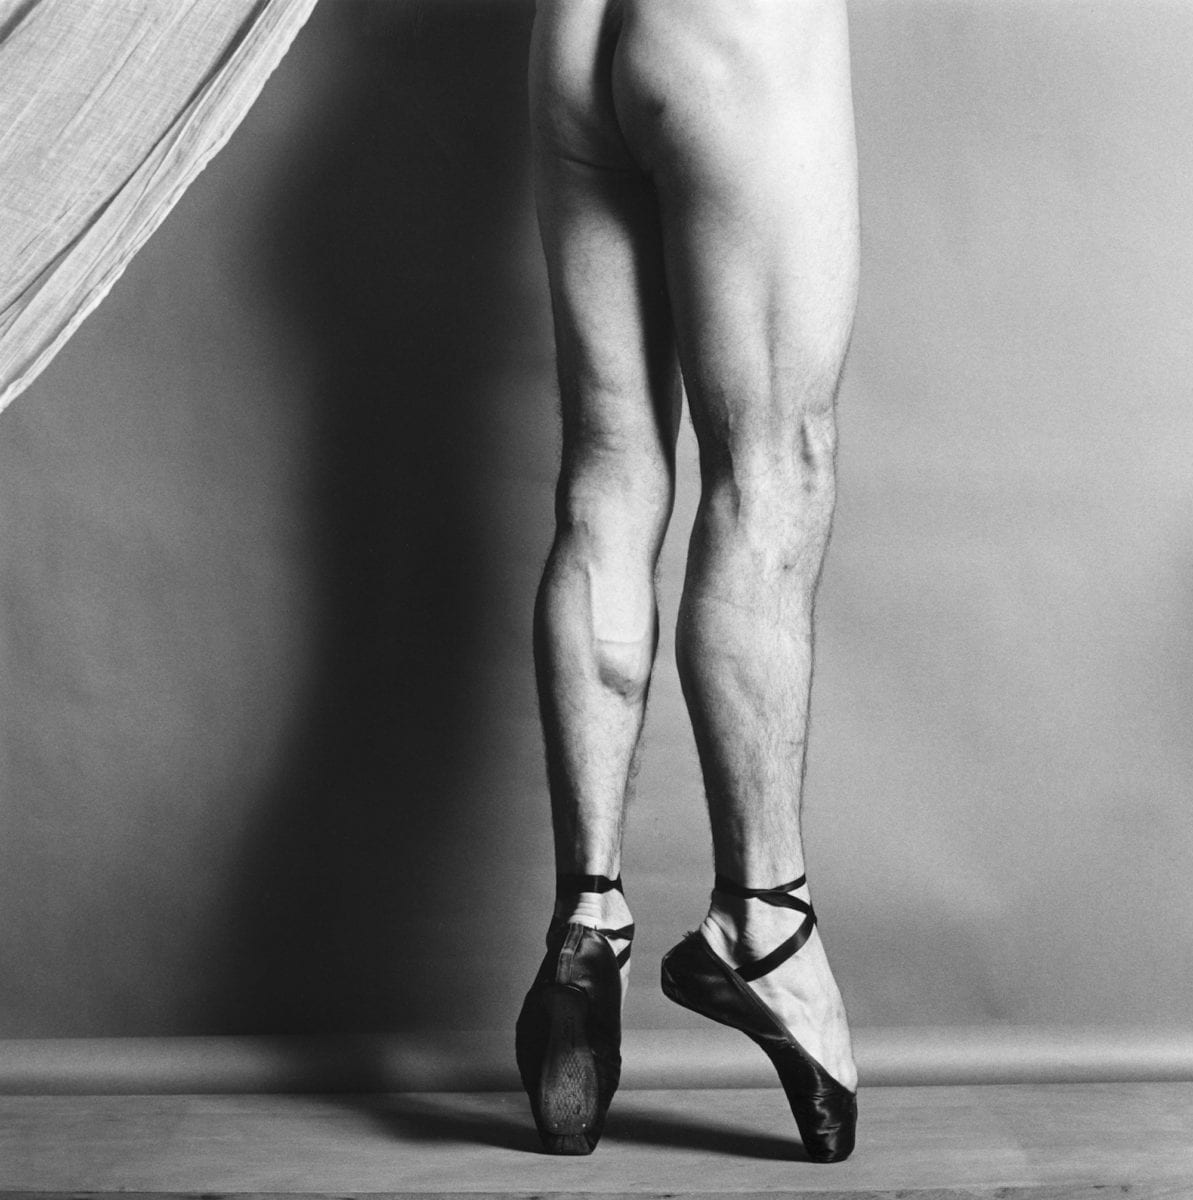 Philip, 1979. Used by permission © Robert Mapplethorpe Foundation